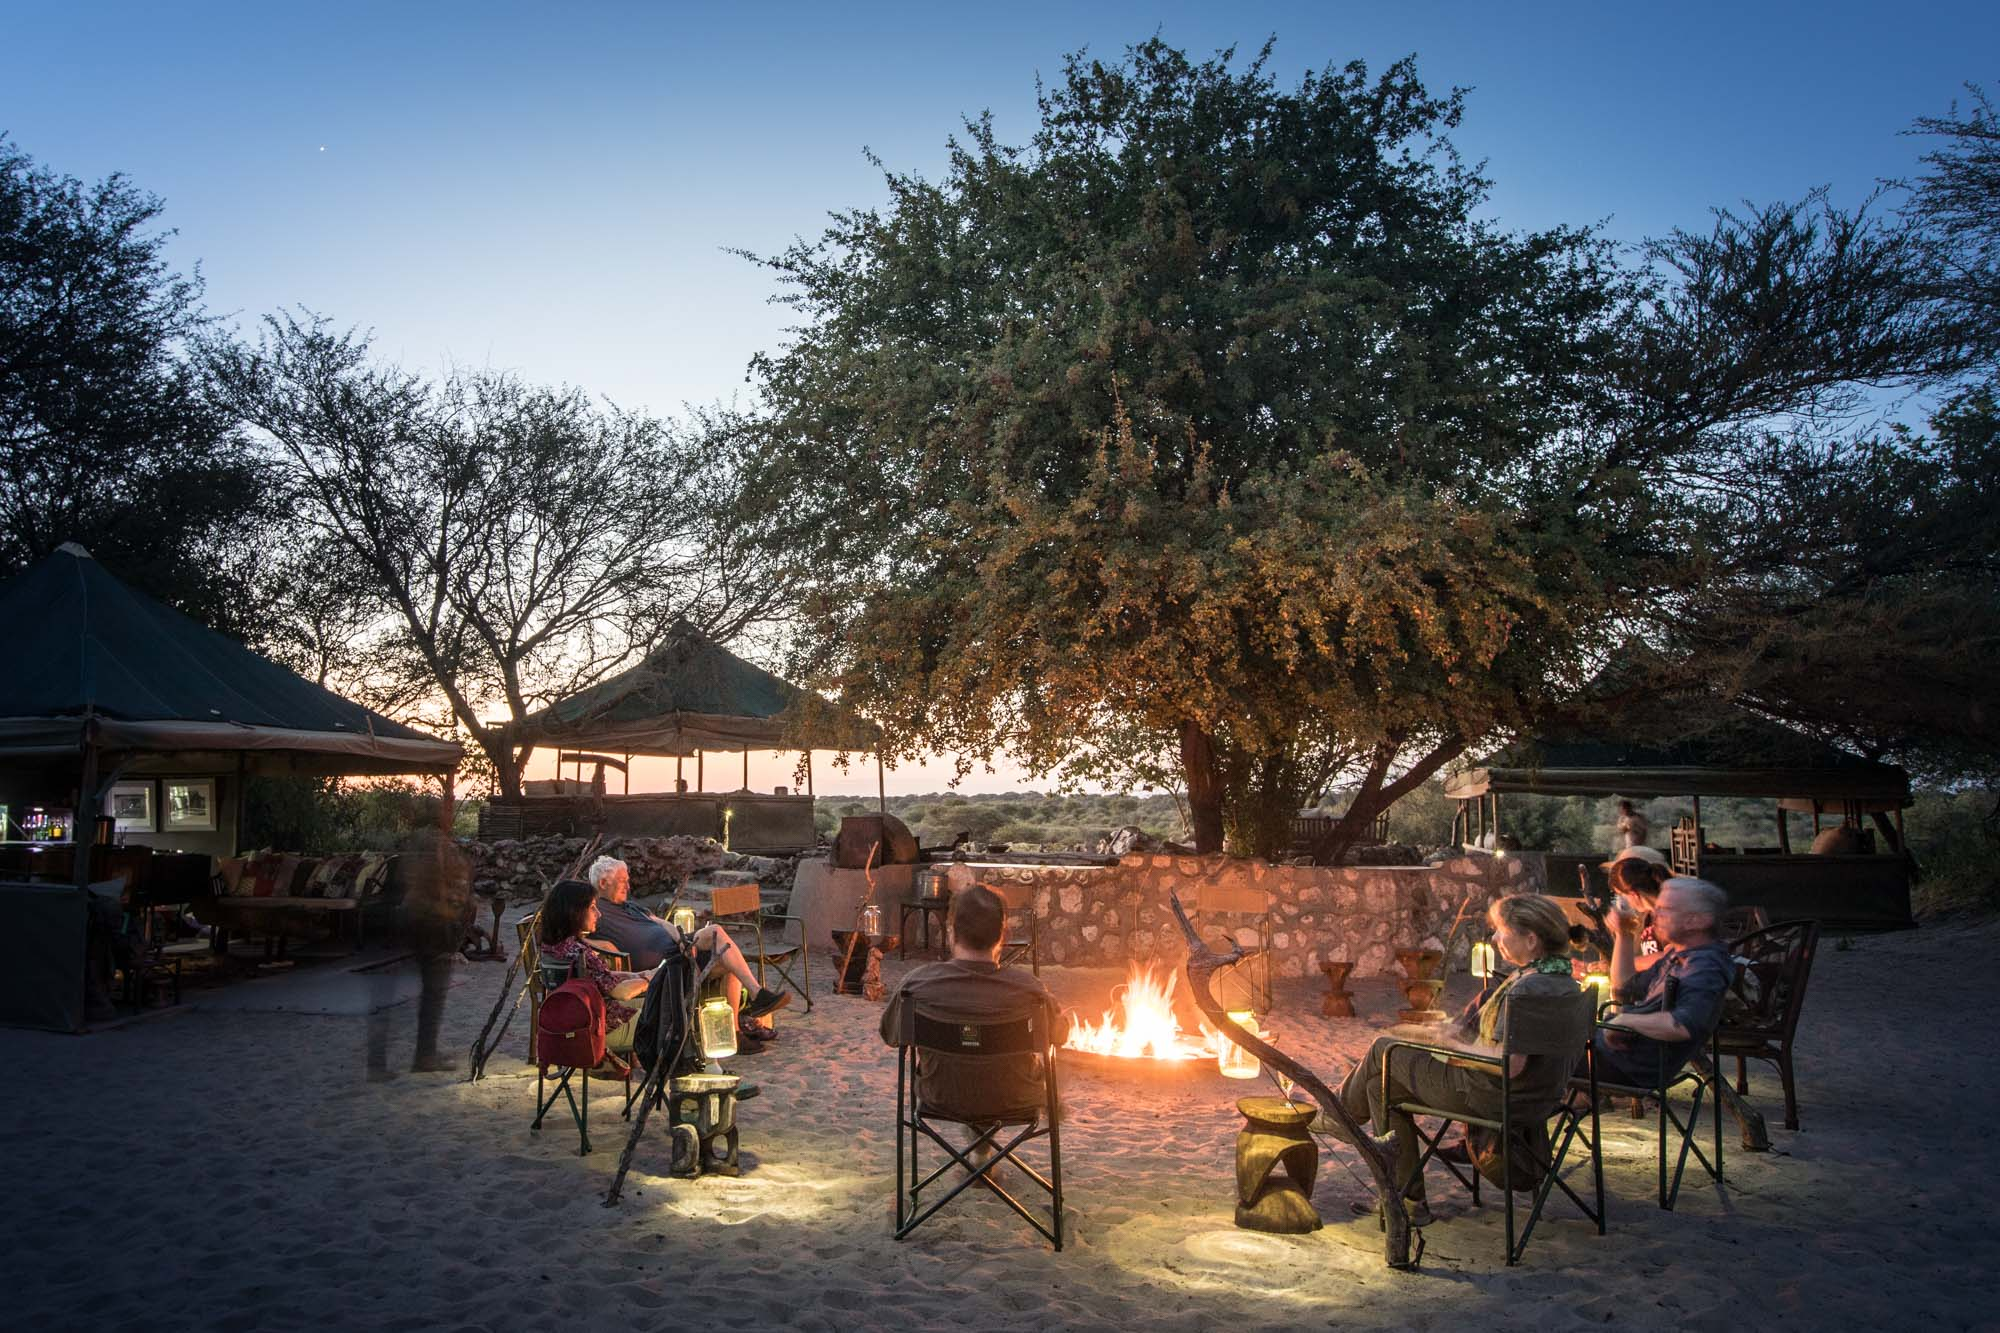 Meno a Kwena lodge is the largest employer of local people in Moreomaoto Village. Tourists from around the world come to Botswana to see wildlife, but if local people don't meaningfully benefit from the presence of the wild animals, there's little incentive to protect it...